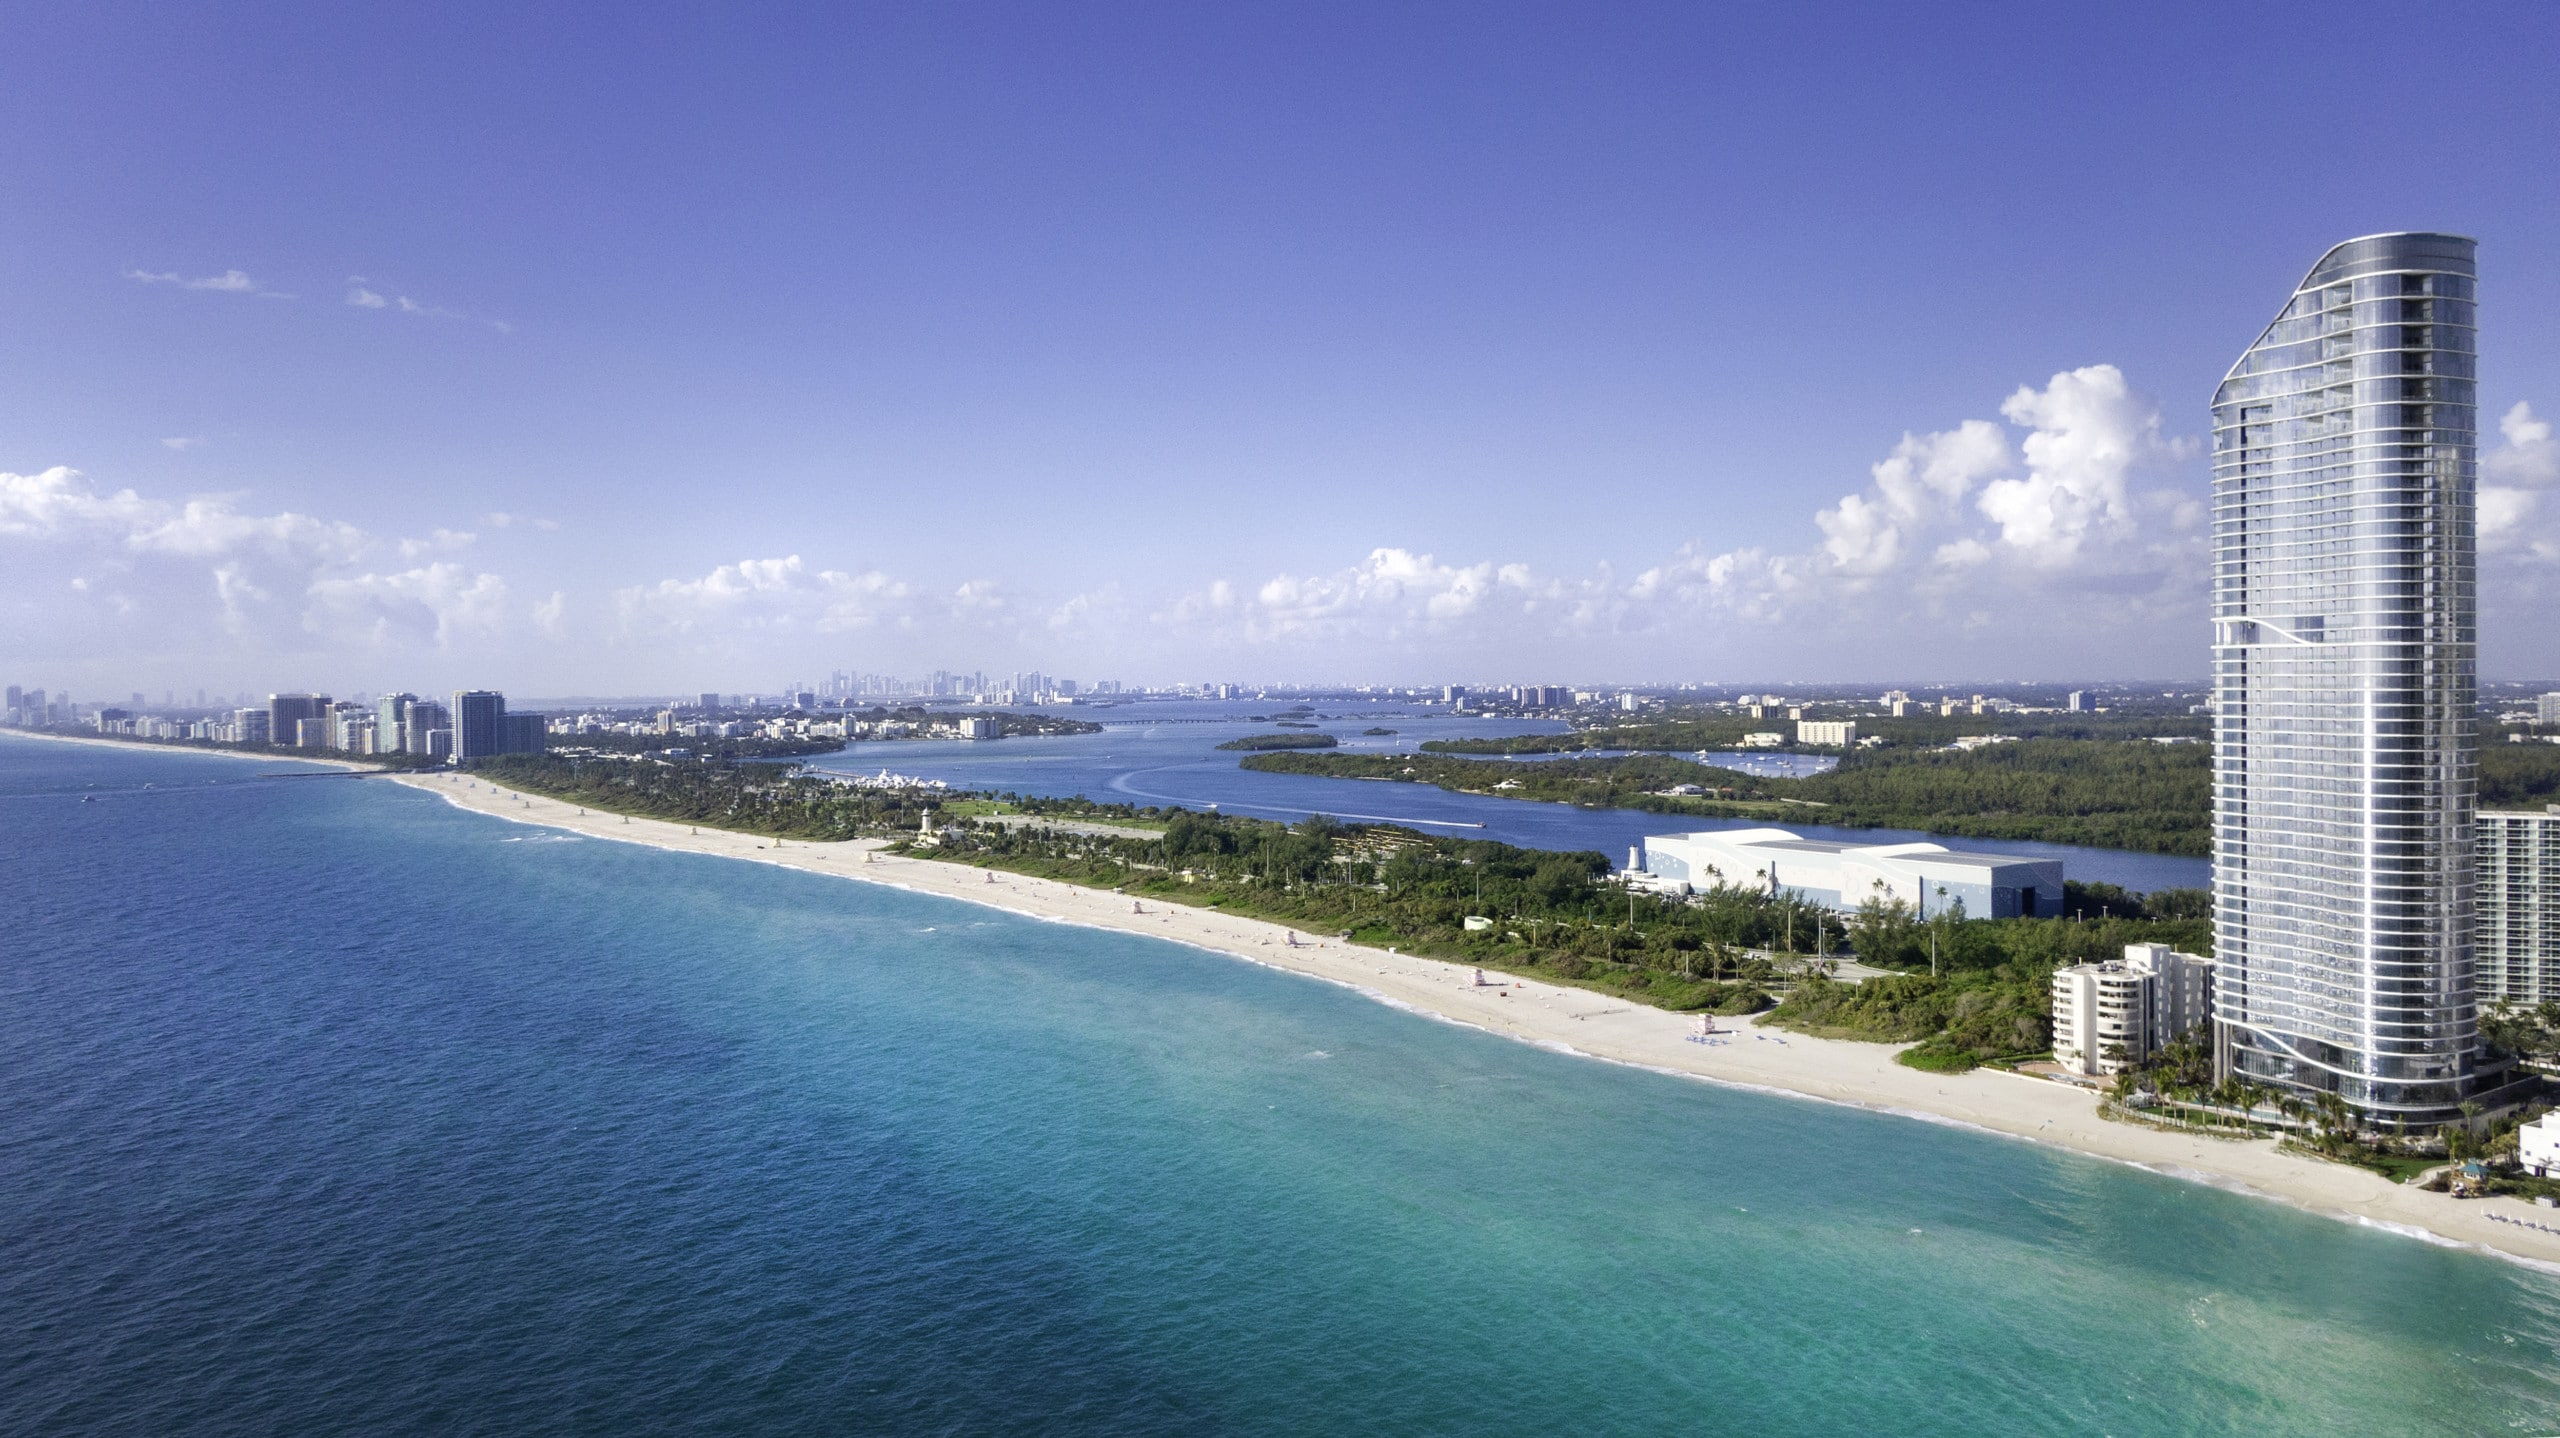 Luxury Condo Sales Remain with Ritz Carlton Sunny Isles Penthouse Sold for $21 million